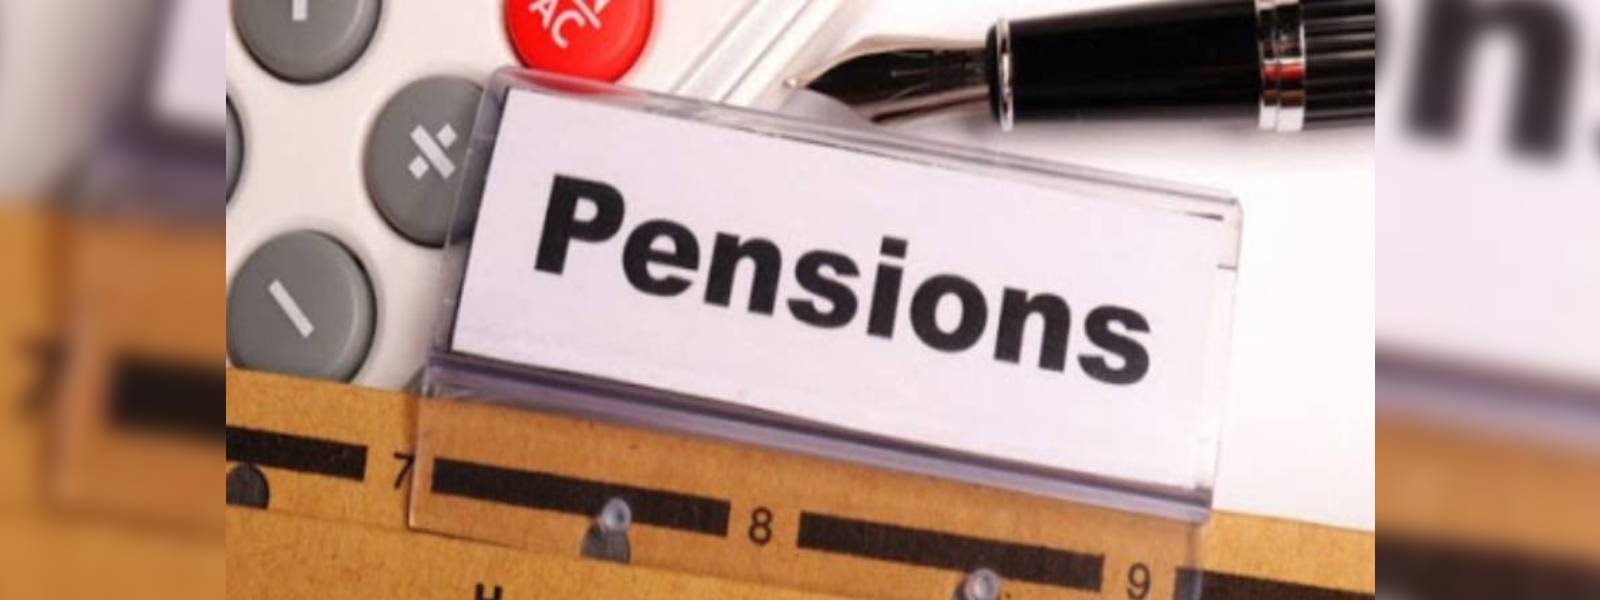 Pension payments for senior citizens today & tomorrow